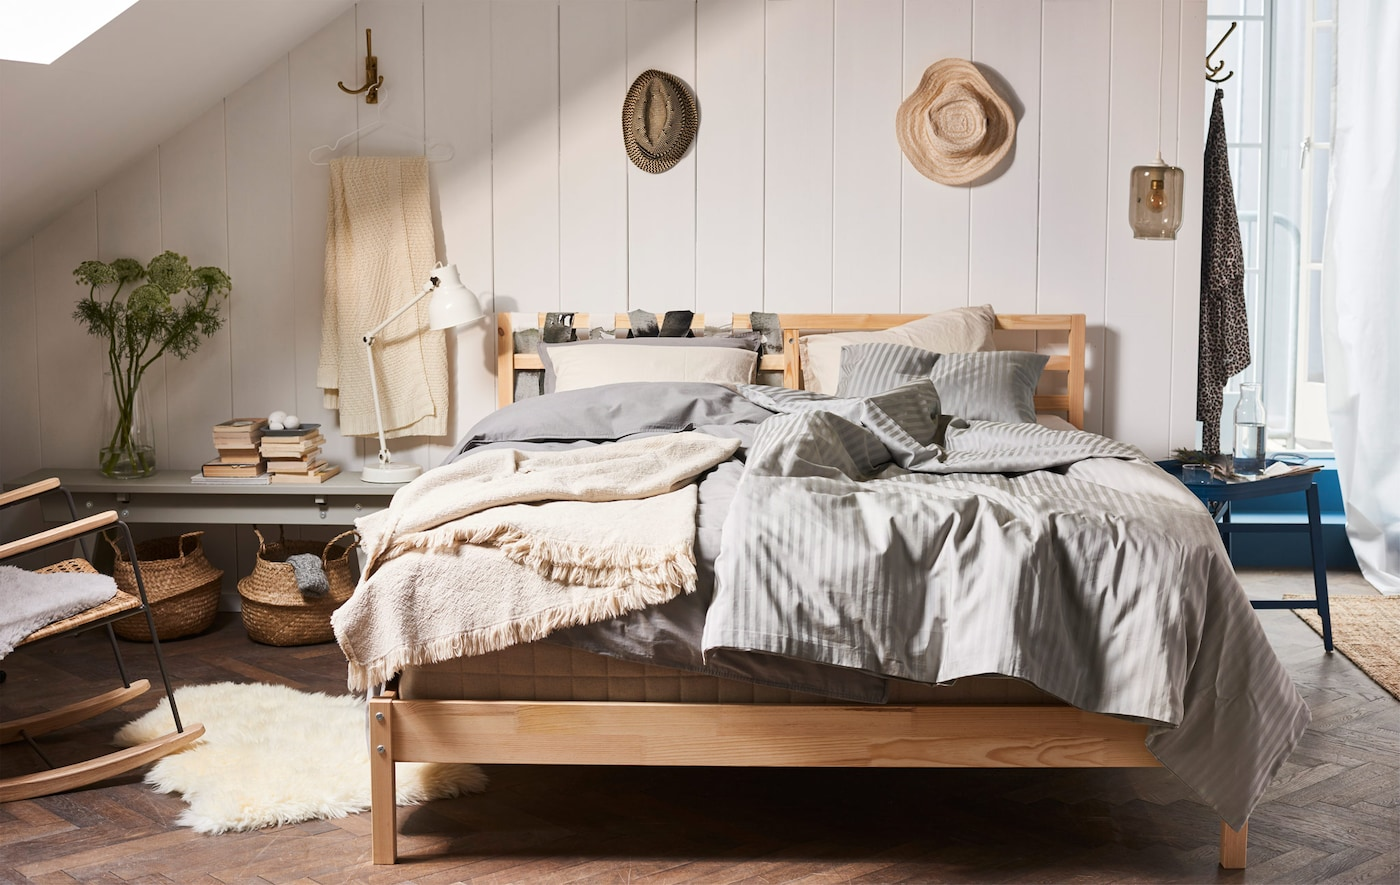 Create a modern bedroom with a minimalistic bed frame! Try IKEA TARVA bed frame which has a simple Scandinavian design in untreated wood.